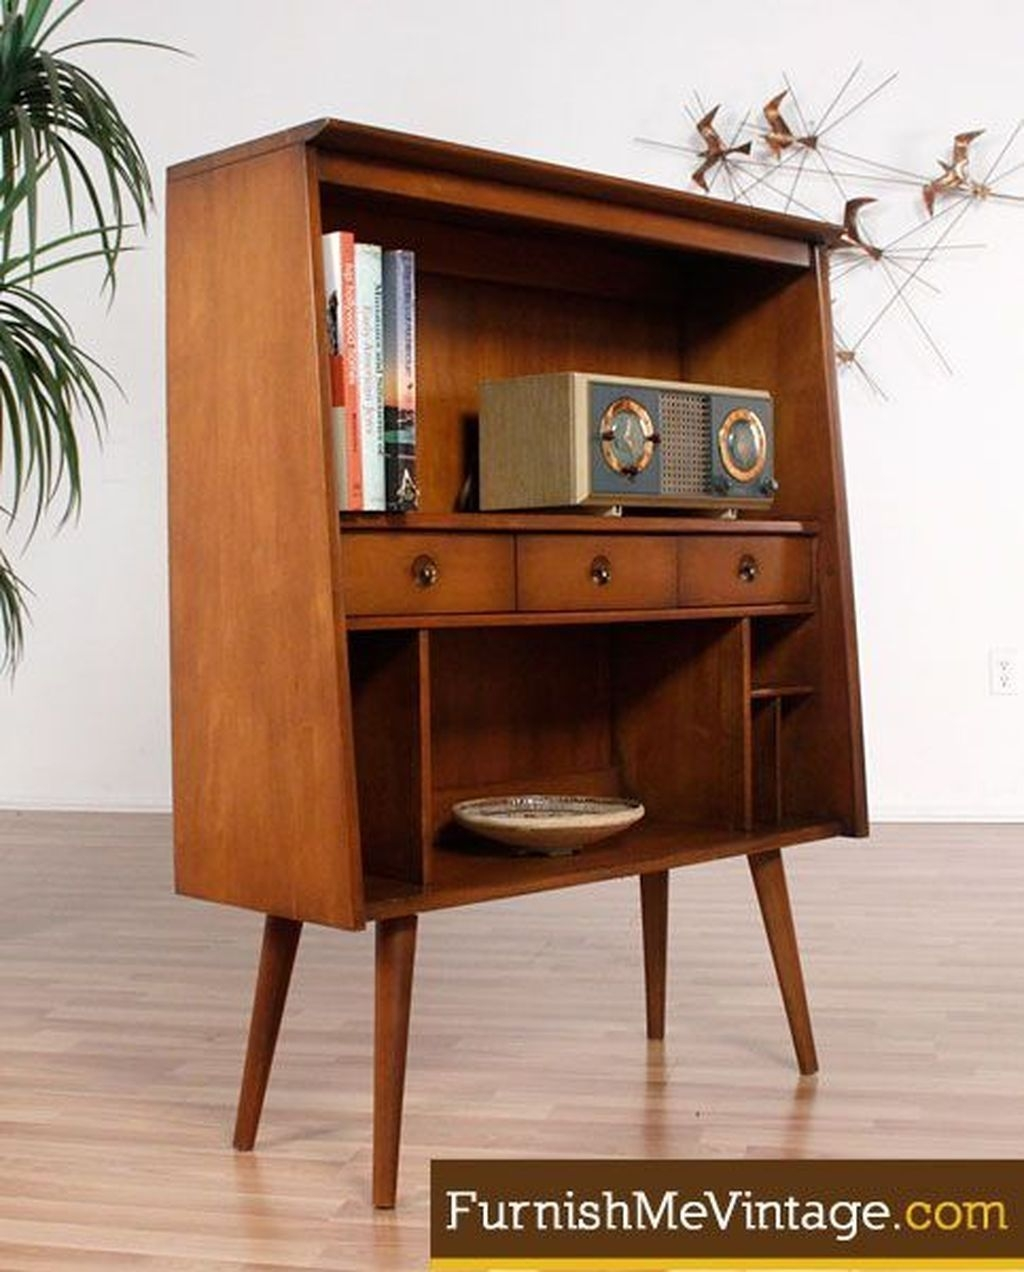 Inspiring Mid Century Furniture Ideas To Try10